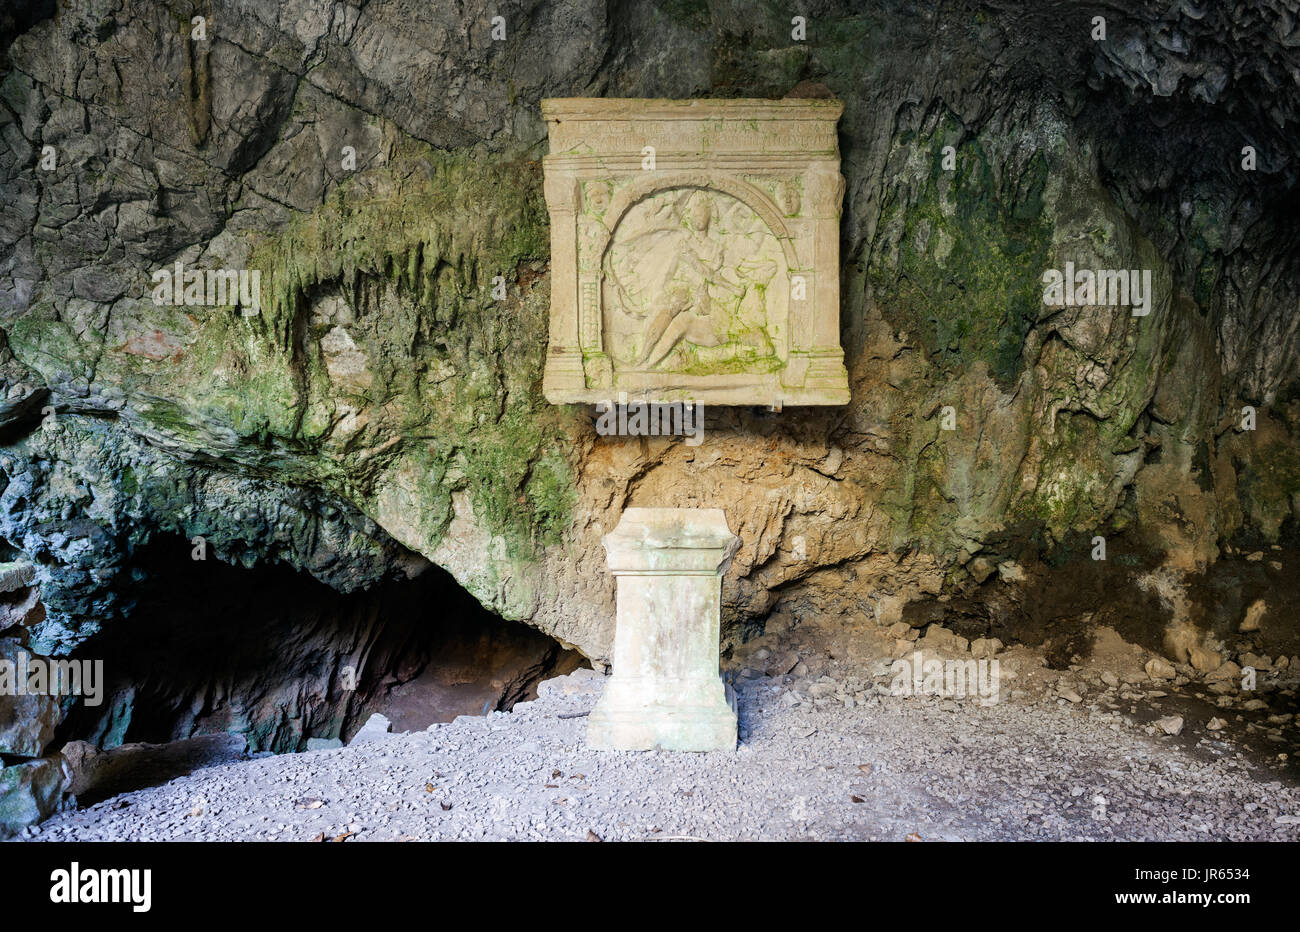 The Duino Mithraeum in the province of Trieste. Mithraea were places of worship for the followers of the Roman mystery religion known as the Mithraic  - Stock Image